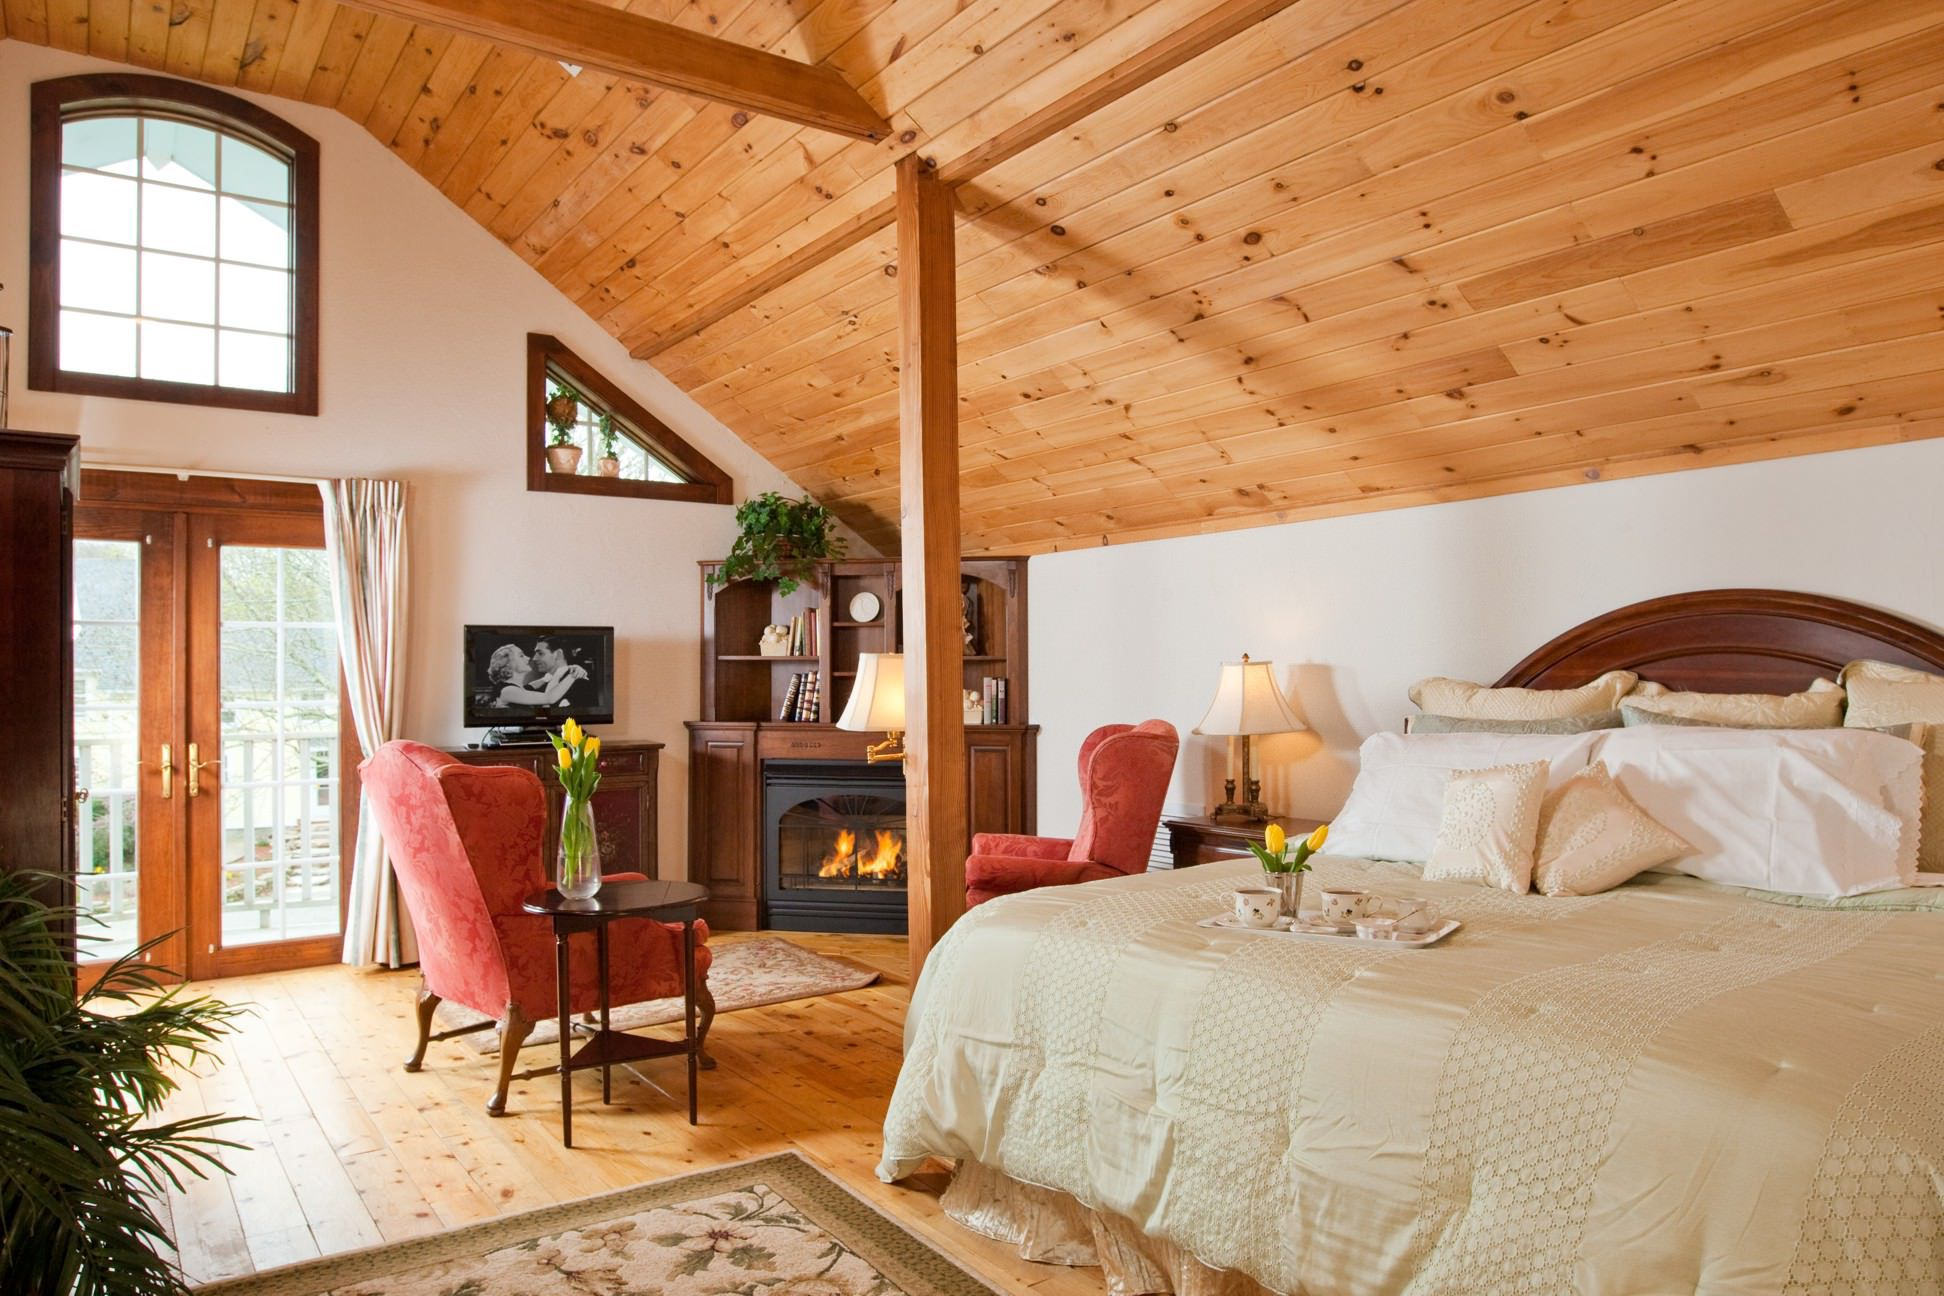 View of the Sara Master Suite in Stonecroft Country Inn